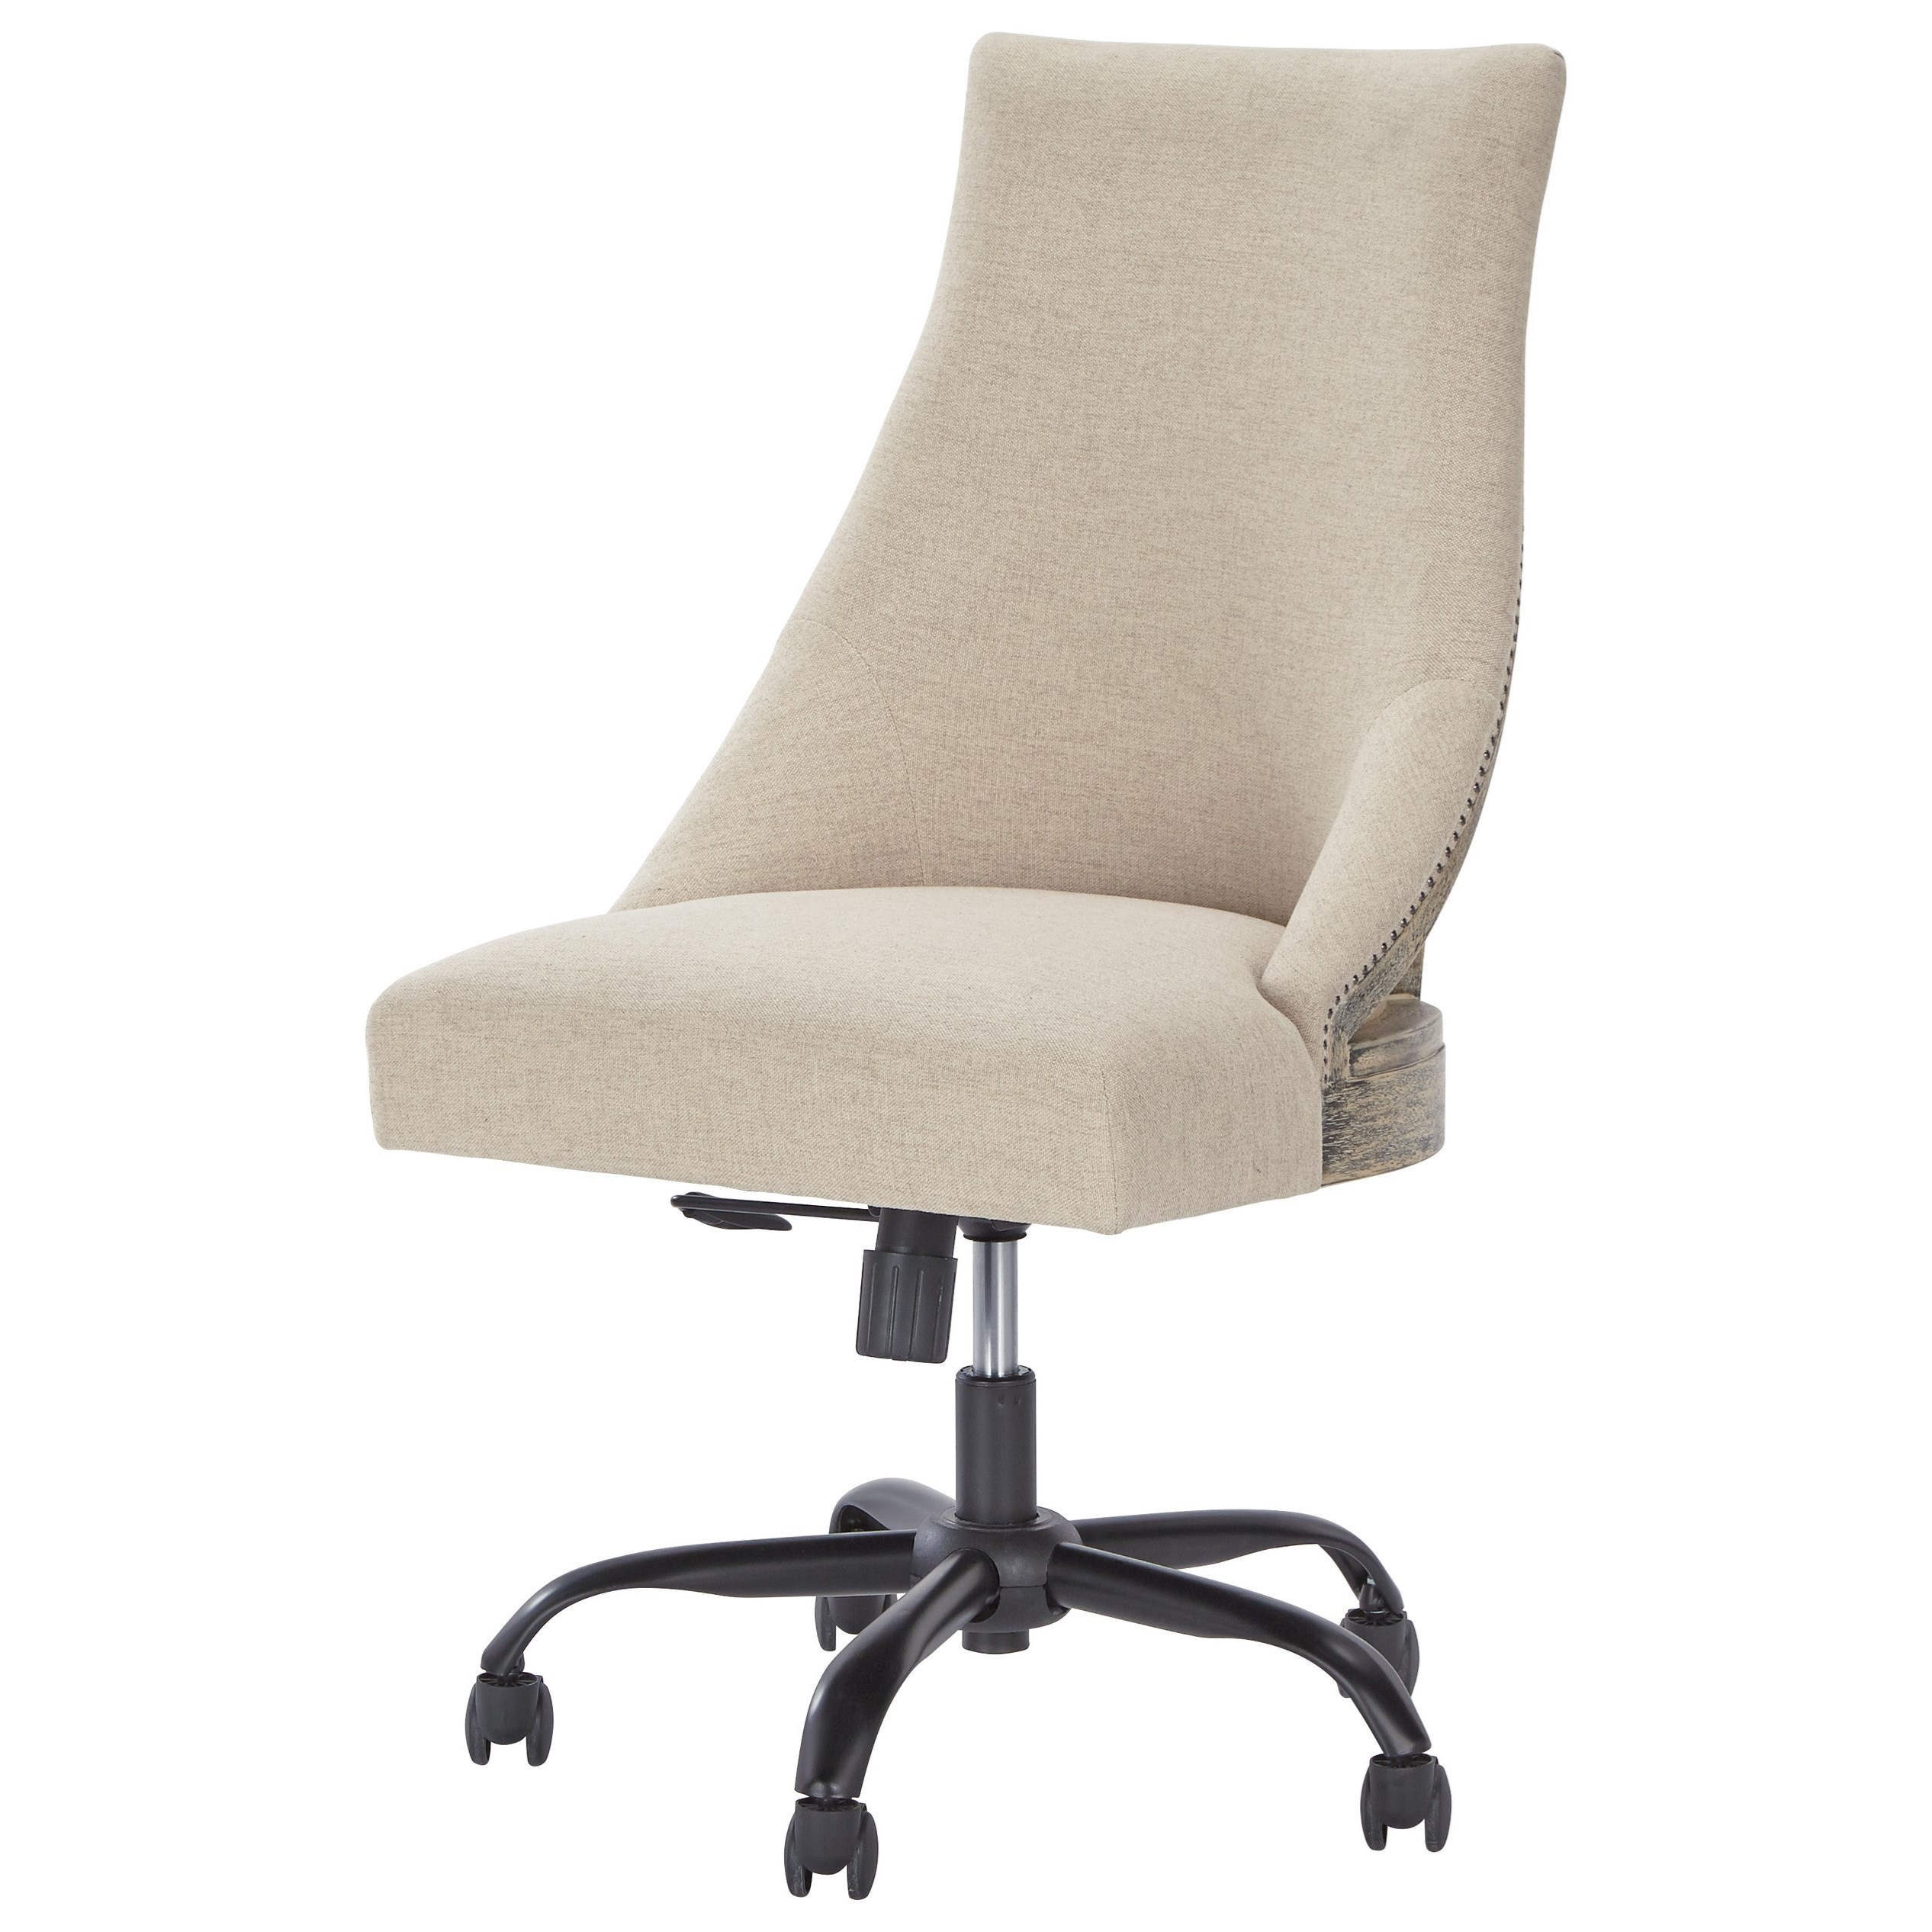 Office Chair Program Home Office Swivel Desk Chair by Signature Design by Ashley at Beck's Furniture